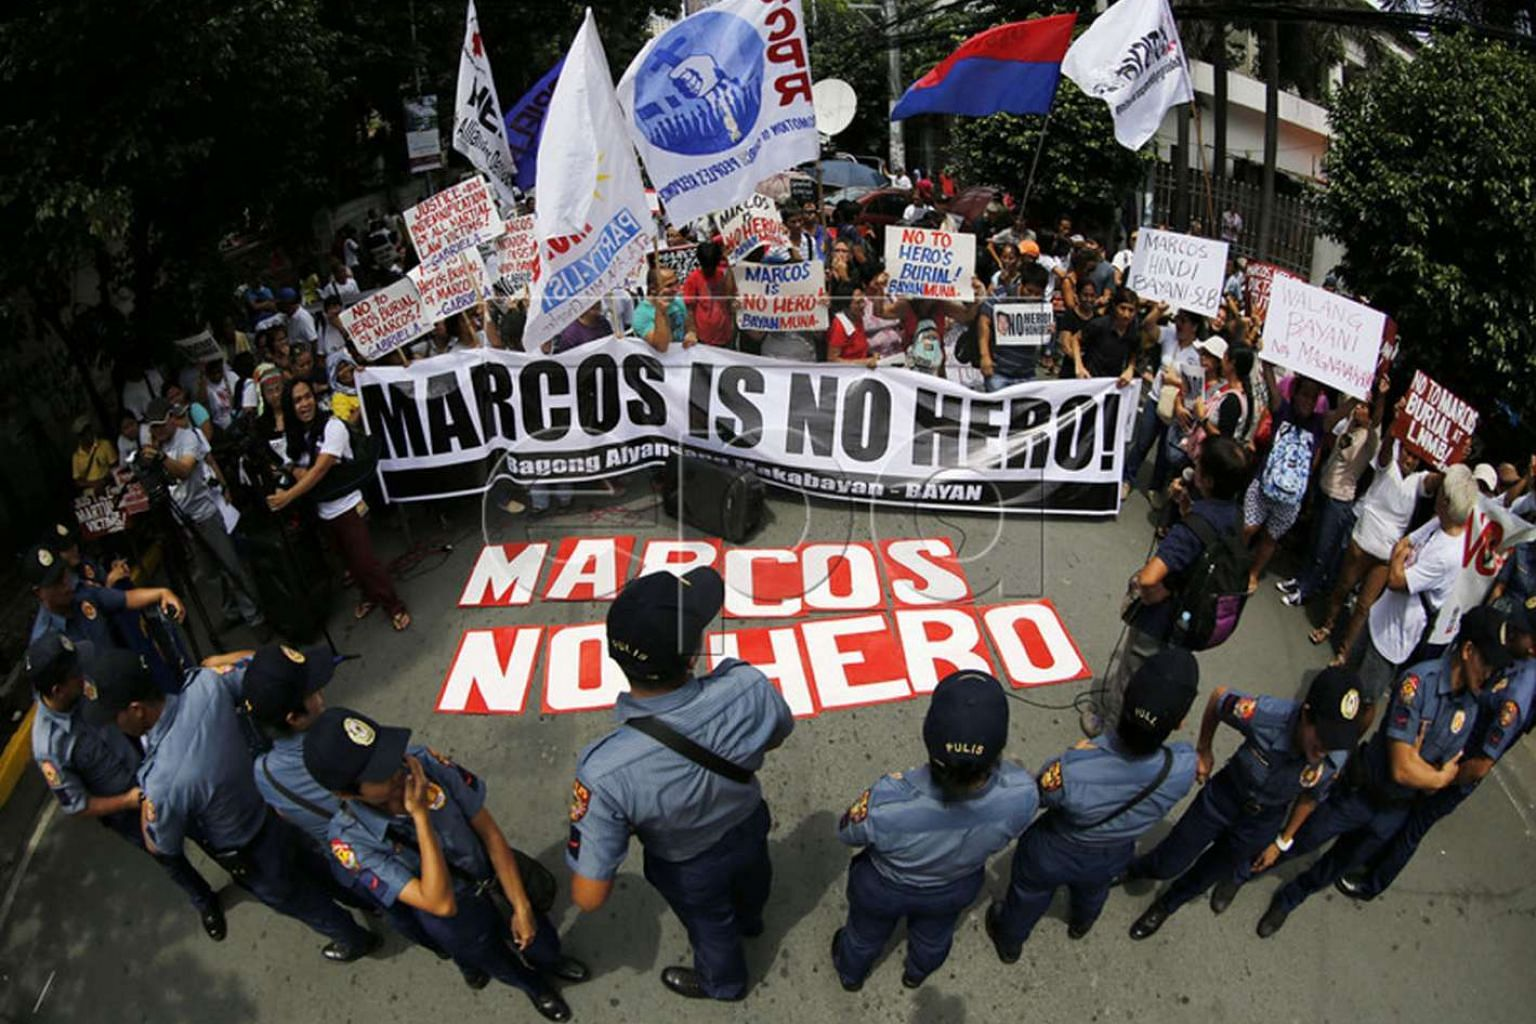 Protesters who oppose giving Marcos a hero's burial gathered last month outside the Supreme Court in Manila where petitions seeking to bar his interment at the Heroes' Cemetery were being heard.